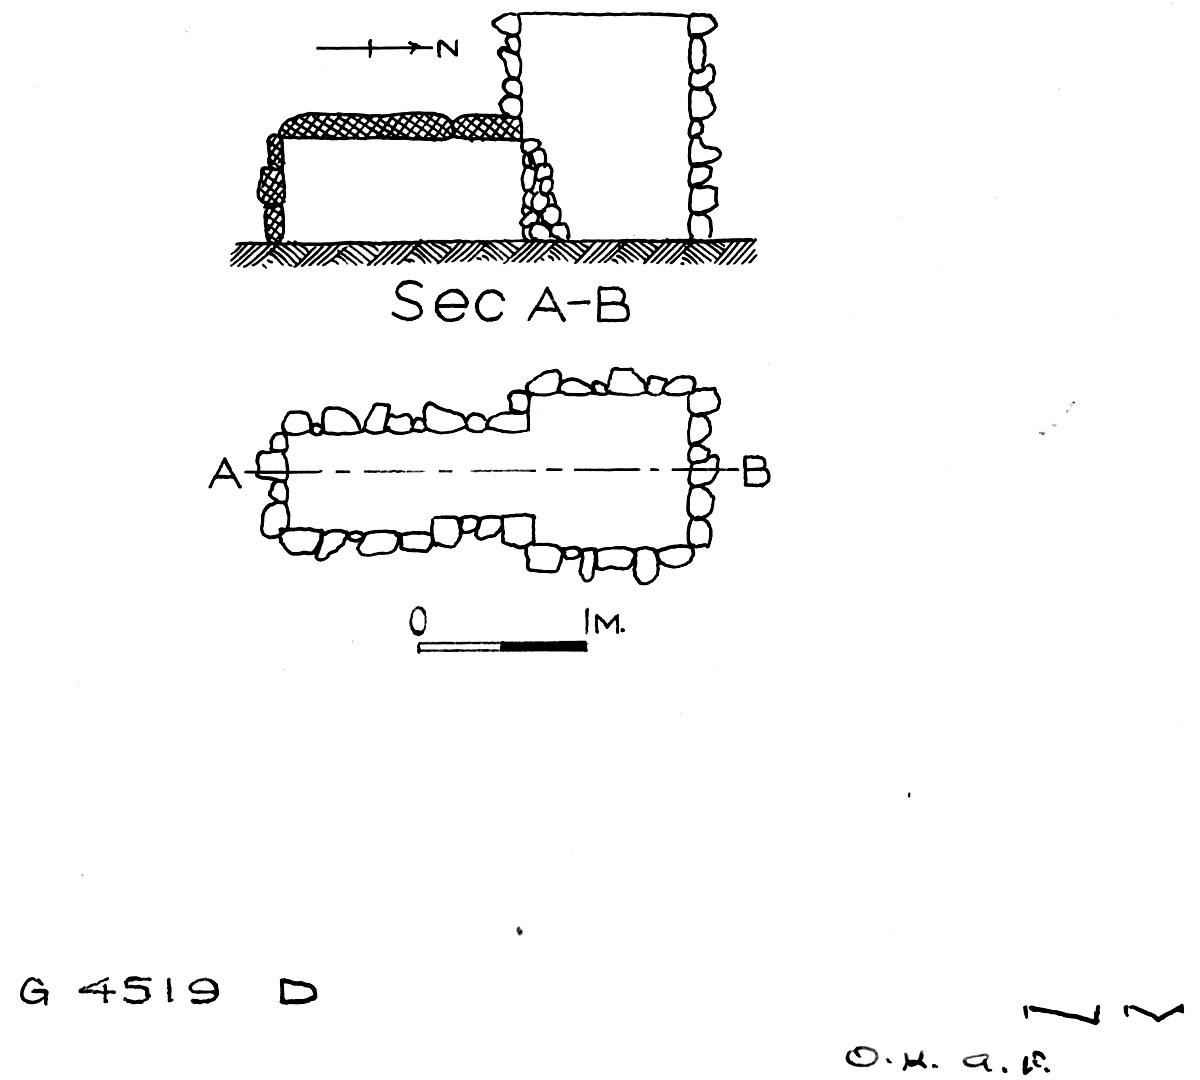 Maps and plans: G 4519, Shaft D